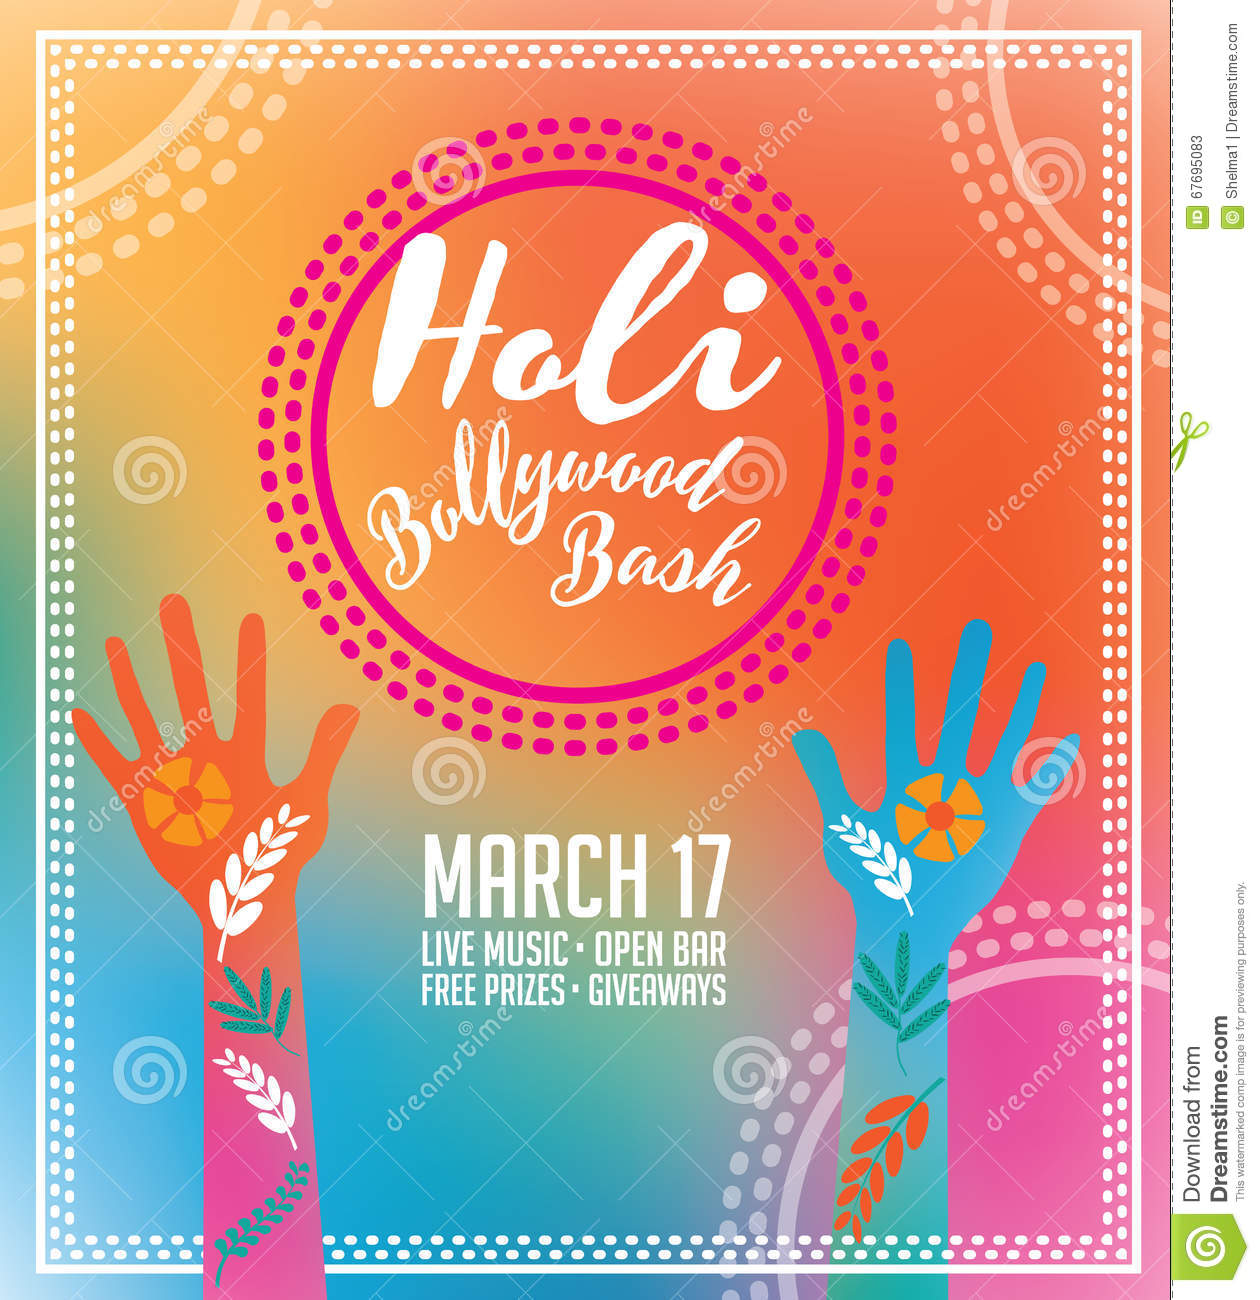 Holi party invitation matter all the best invitation in 2018 office holiday party invitation wording ideas from purpletrail stopboris Images